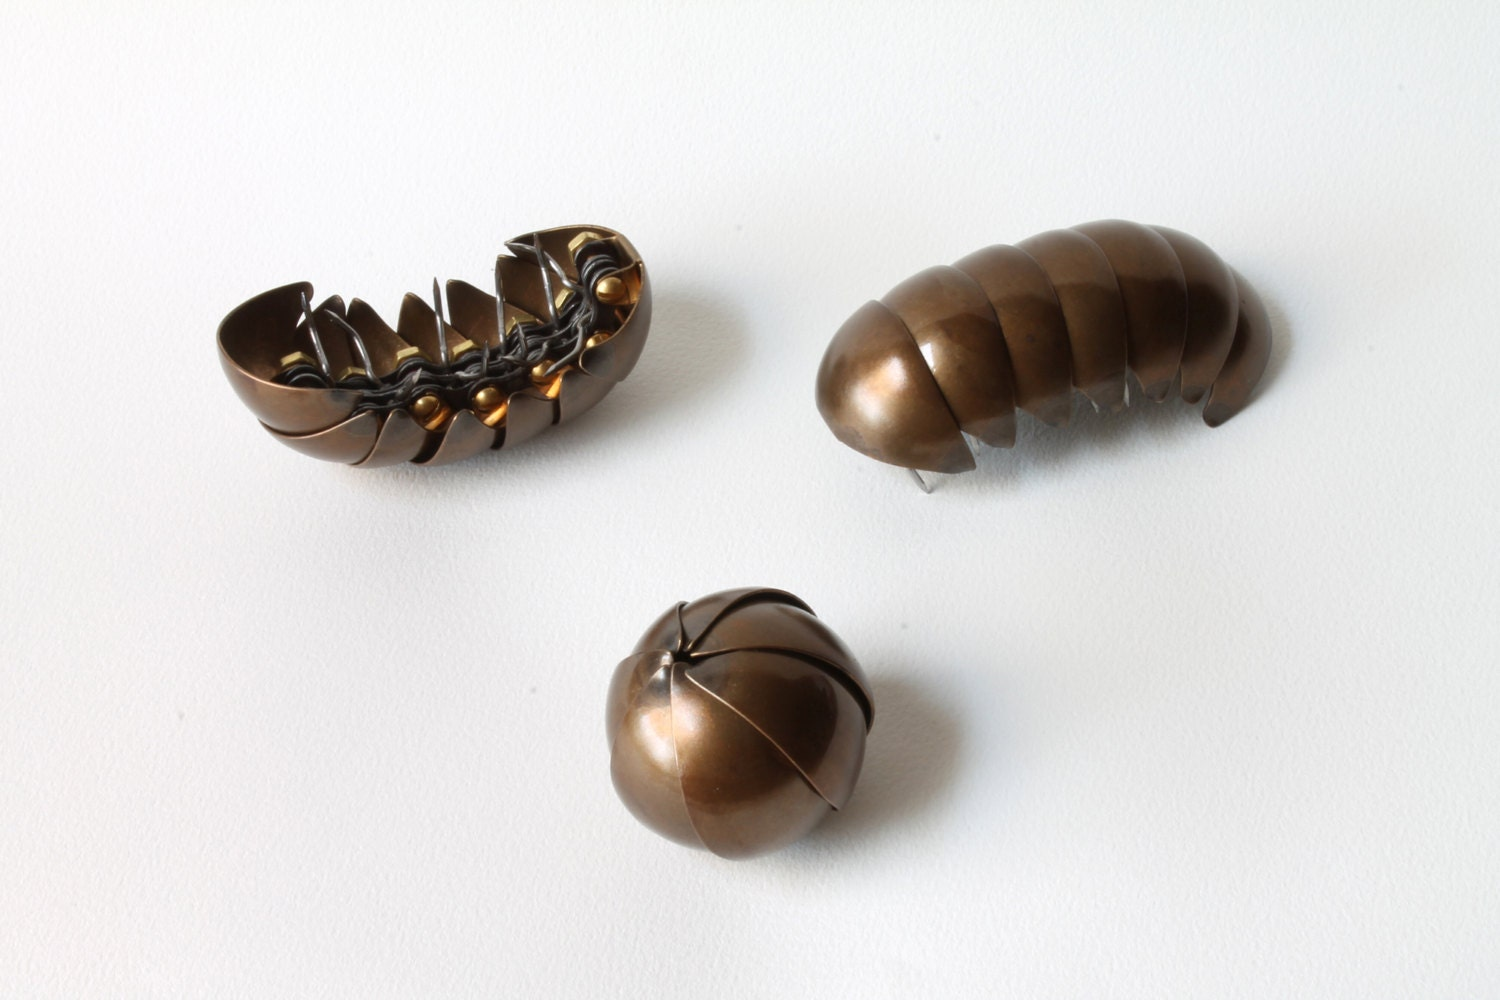 brass pillbug with light bronze patina. Black Bedroom Furniture Sets. Home Design Ideas